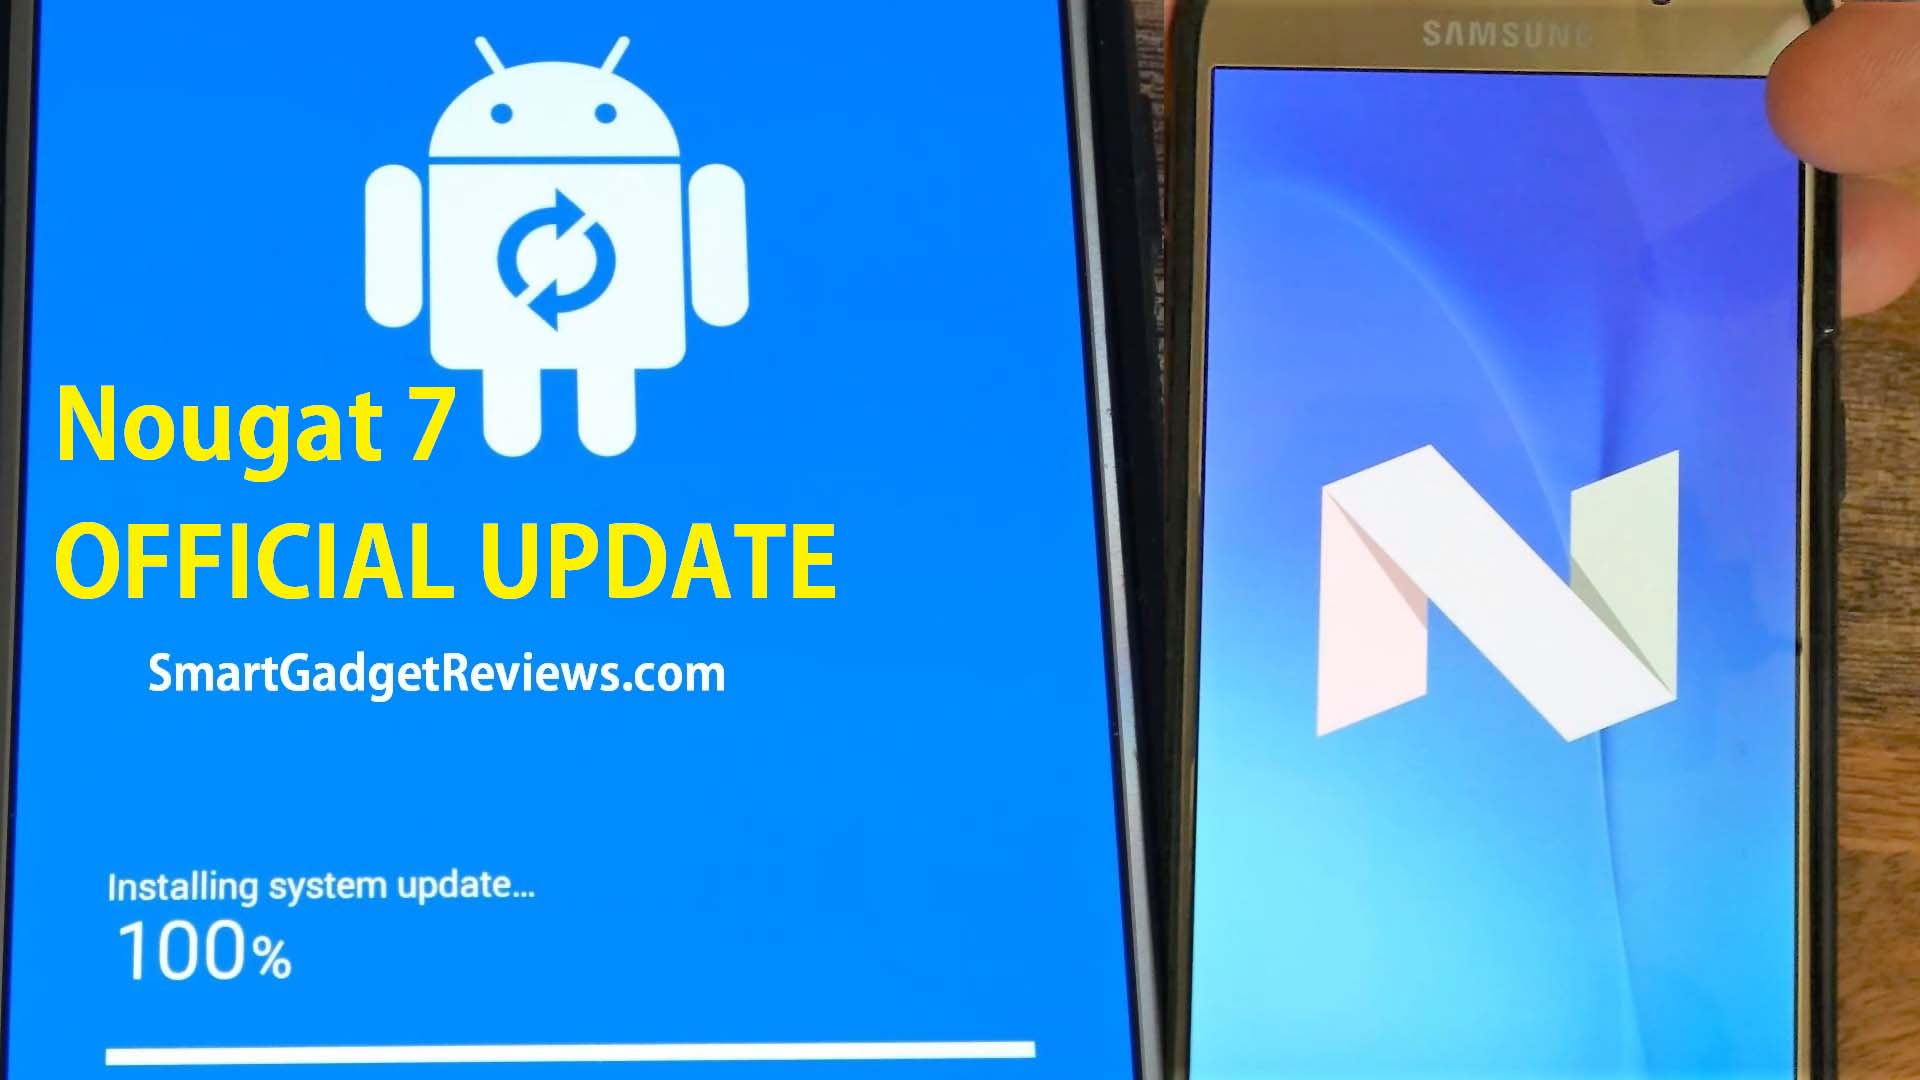 How To Get Samsung Nougat 7 Android Update for Mobile phone